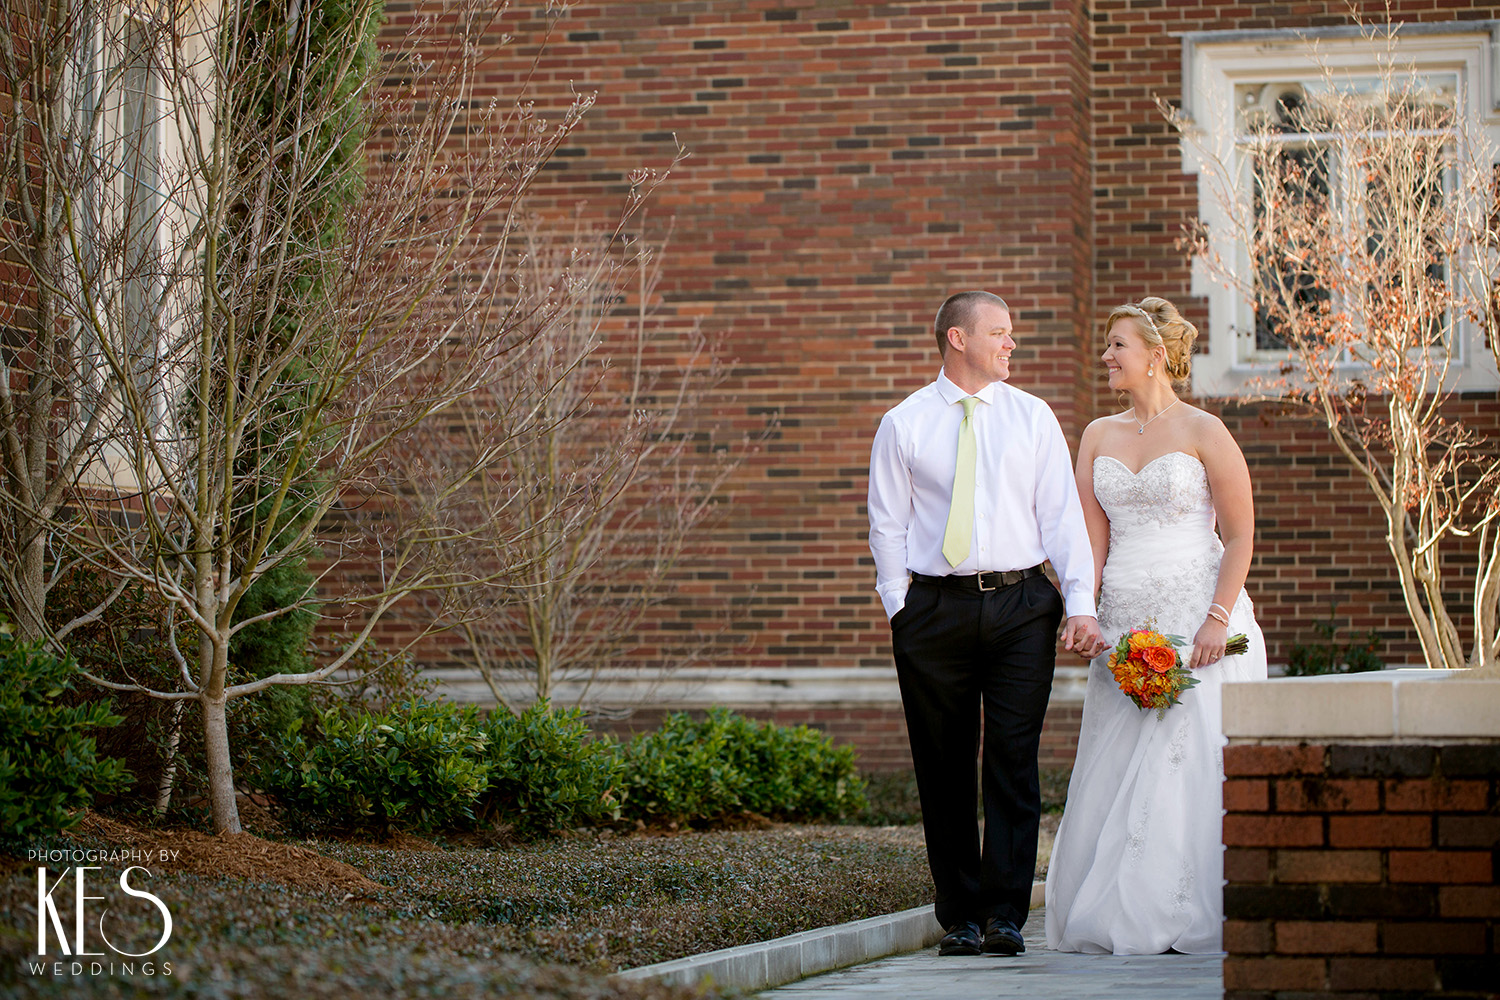 Lindsay_Matt_Wedding_19.JPG